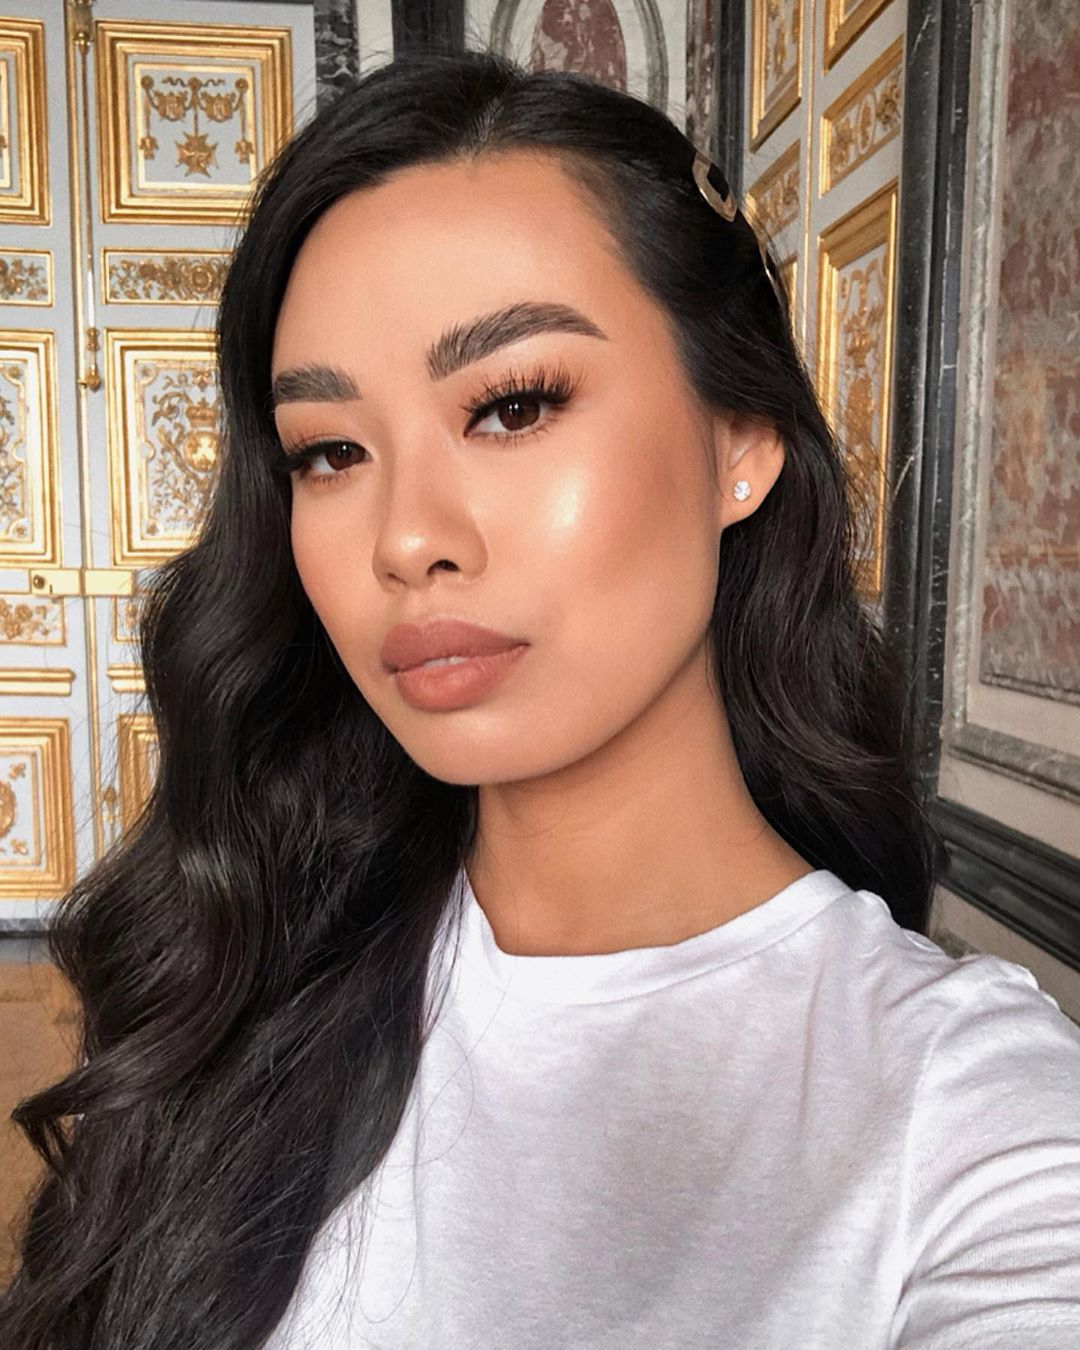 Joanna Vongphoumy On Instagram Going To Film A Grwm Tomorrow So Comment Below Any Questions You Have For Me Makeup Inspiration Makeup Looks Beauty Make Up In volleyball two teams try to score points by hitting or tapping a ball over the net so that he hits the ground inside the field of the opponent. pinterest